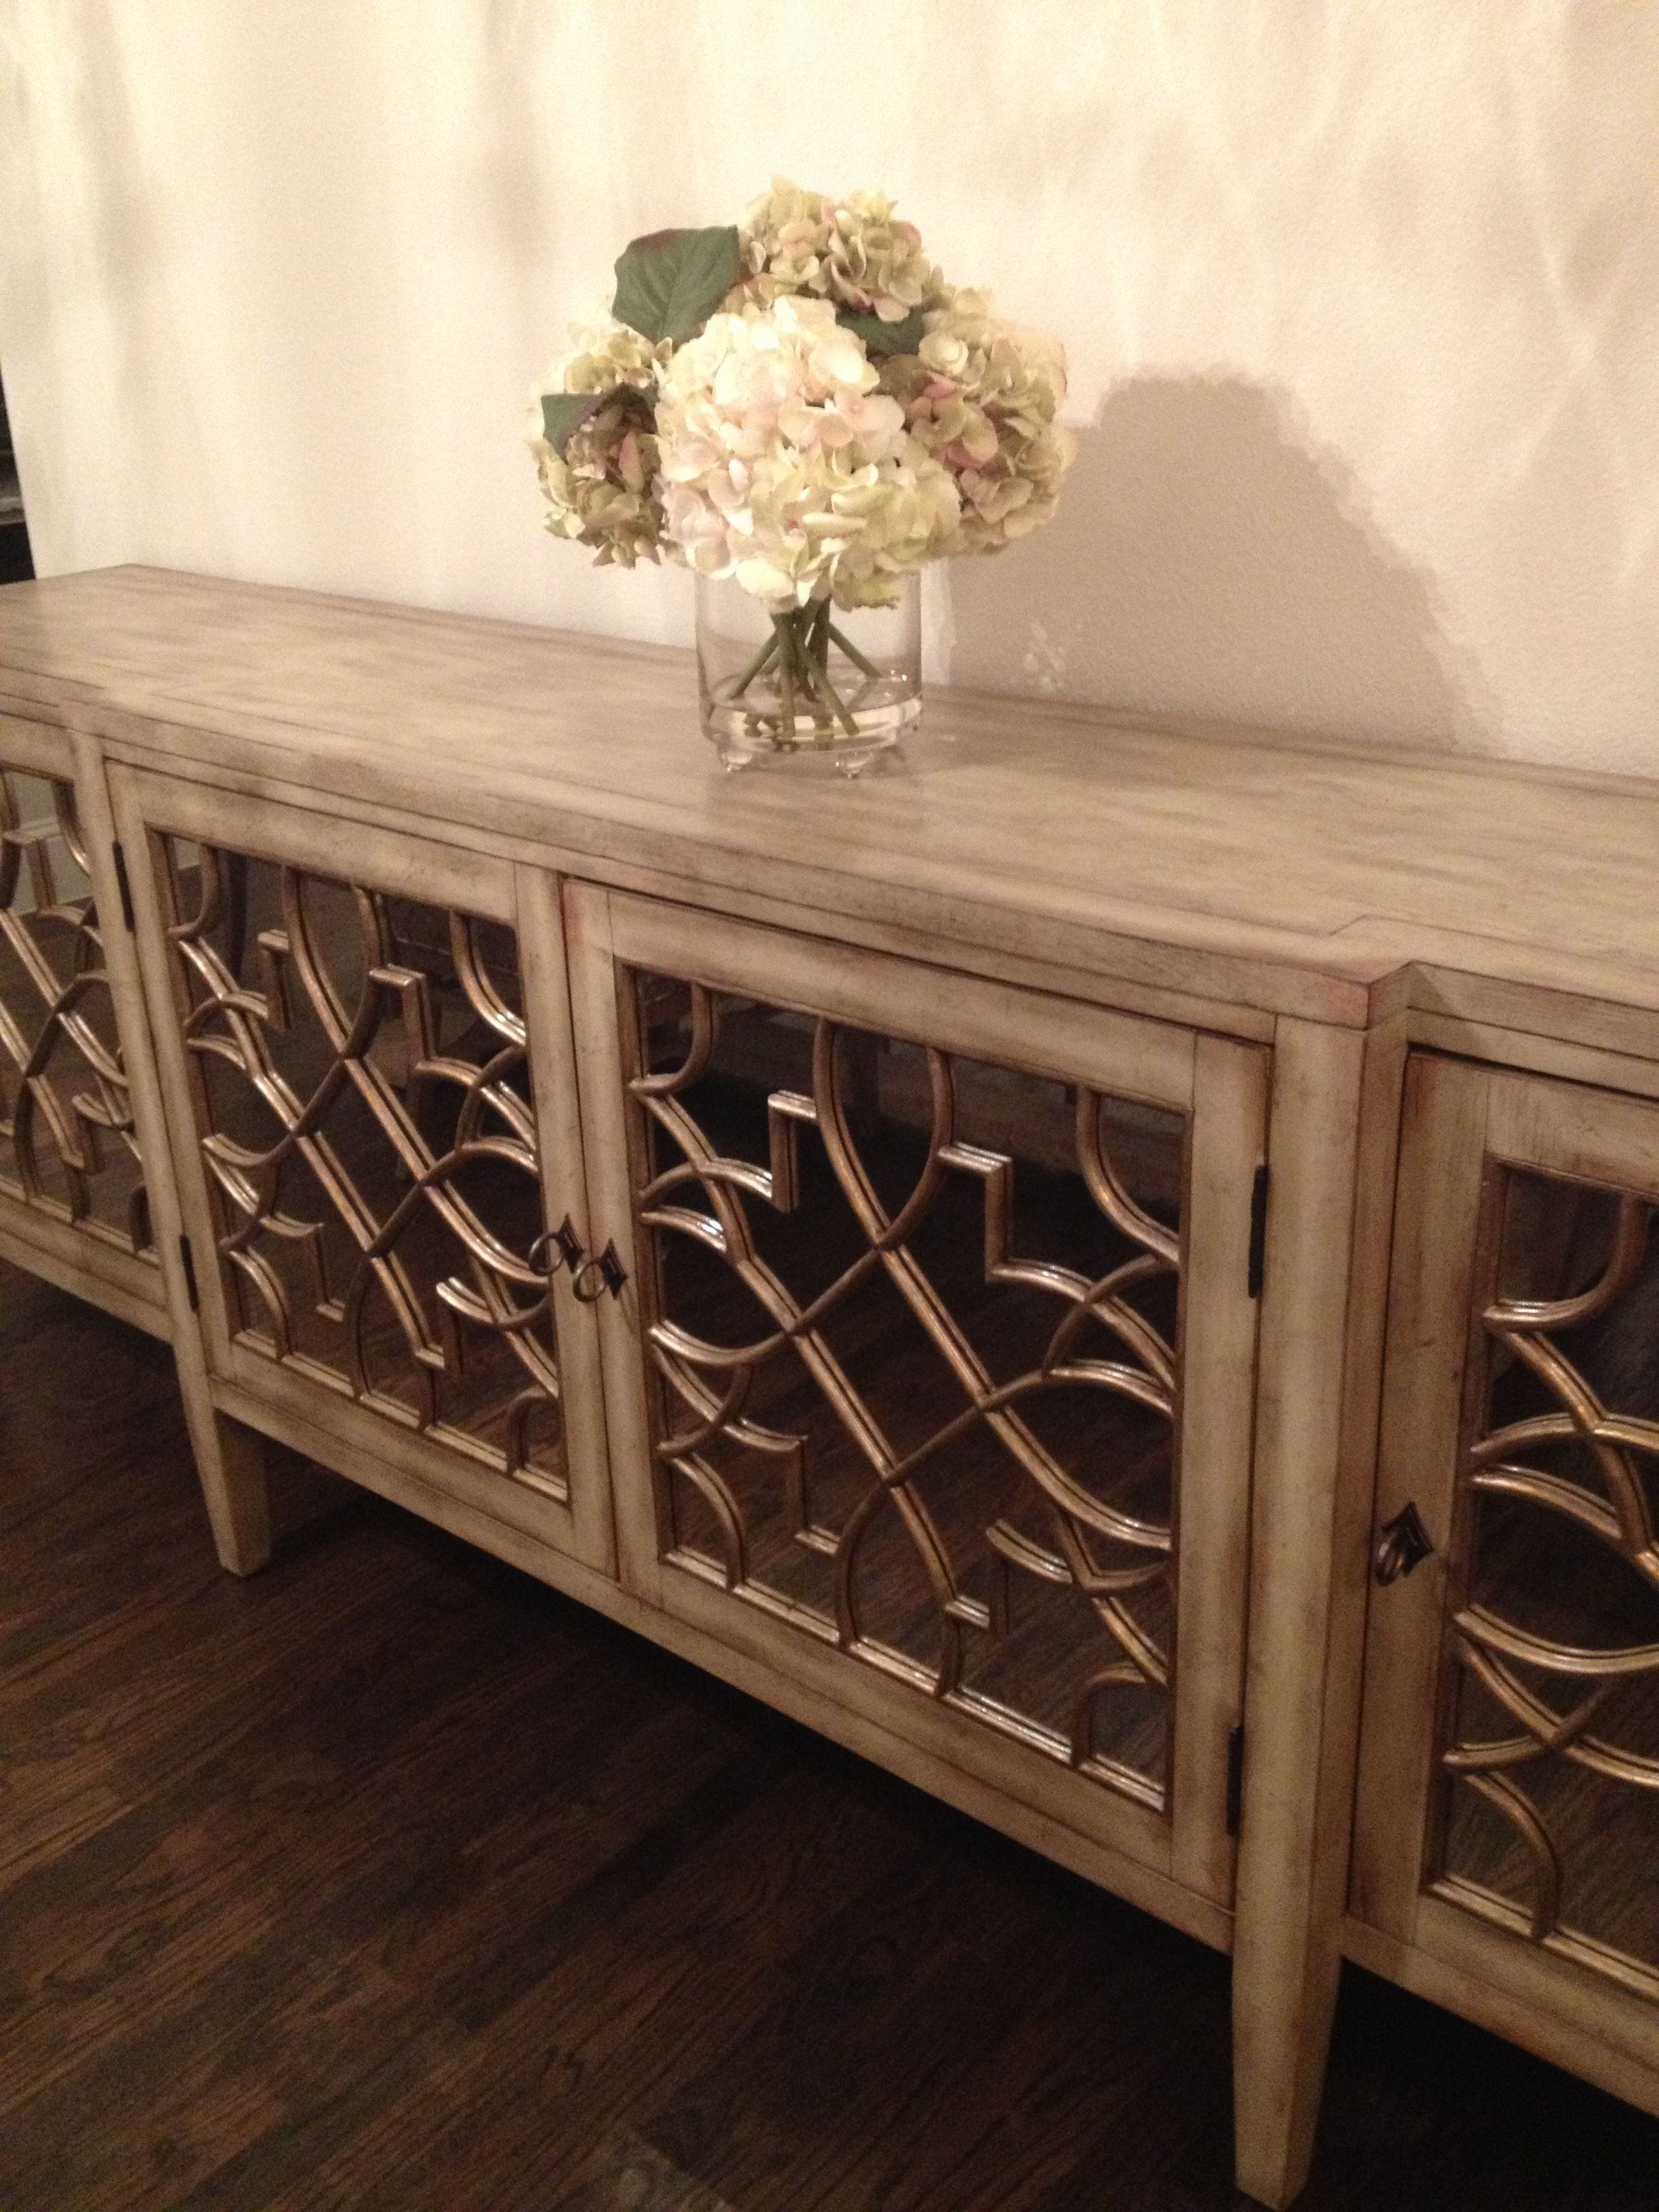 Mirrored Buffet Table for Dining Room | Home Ideas ...